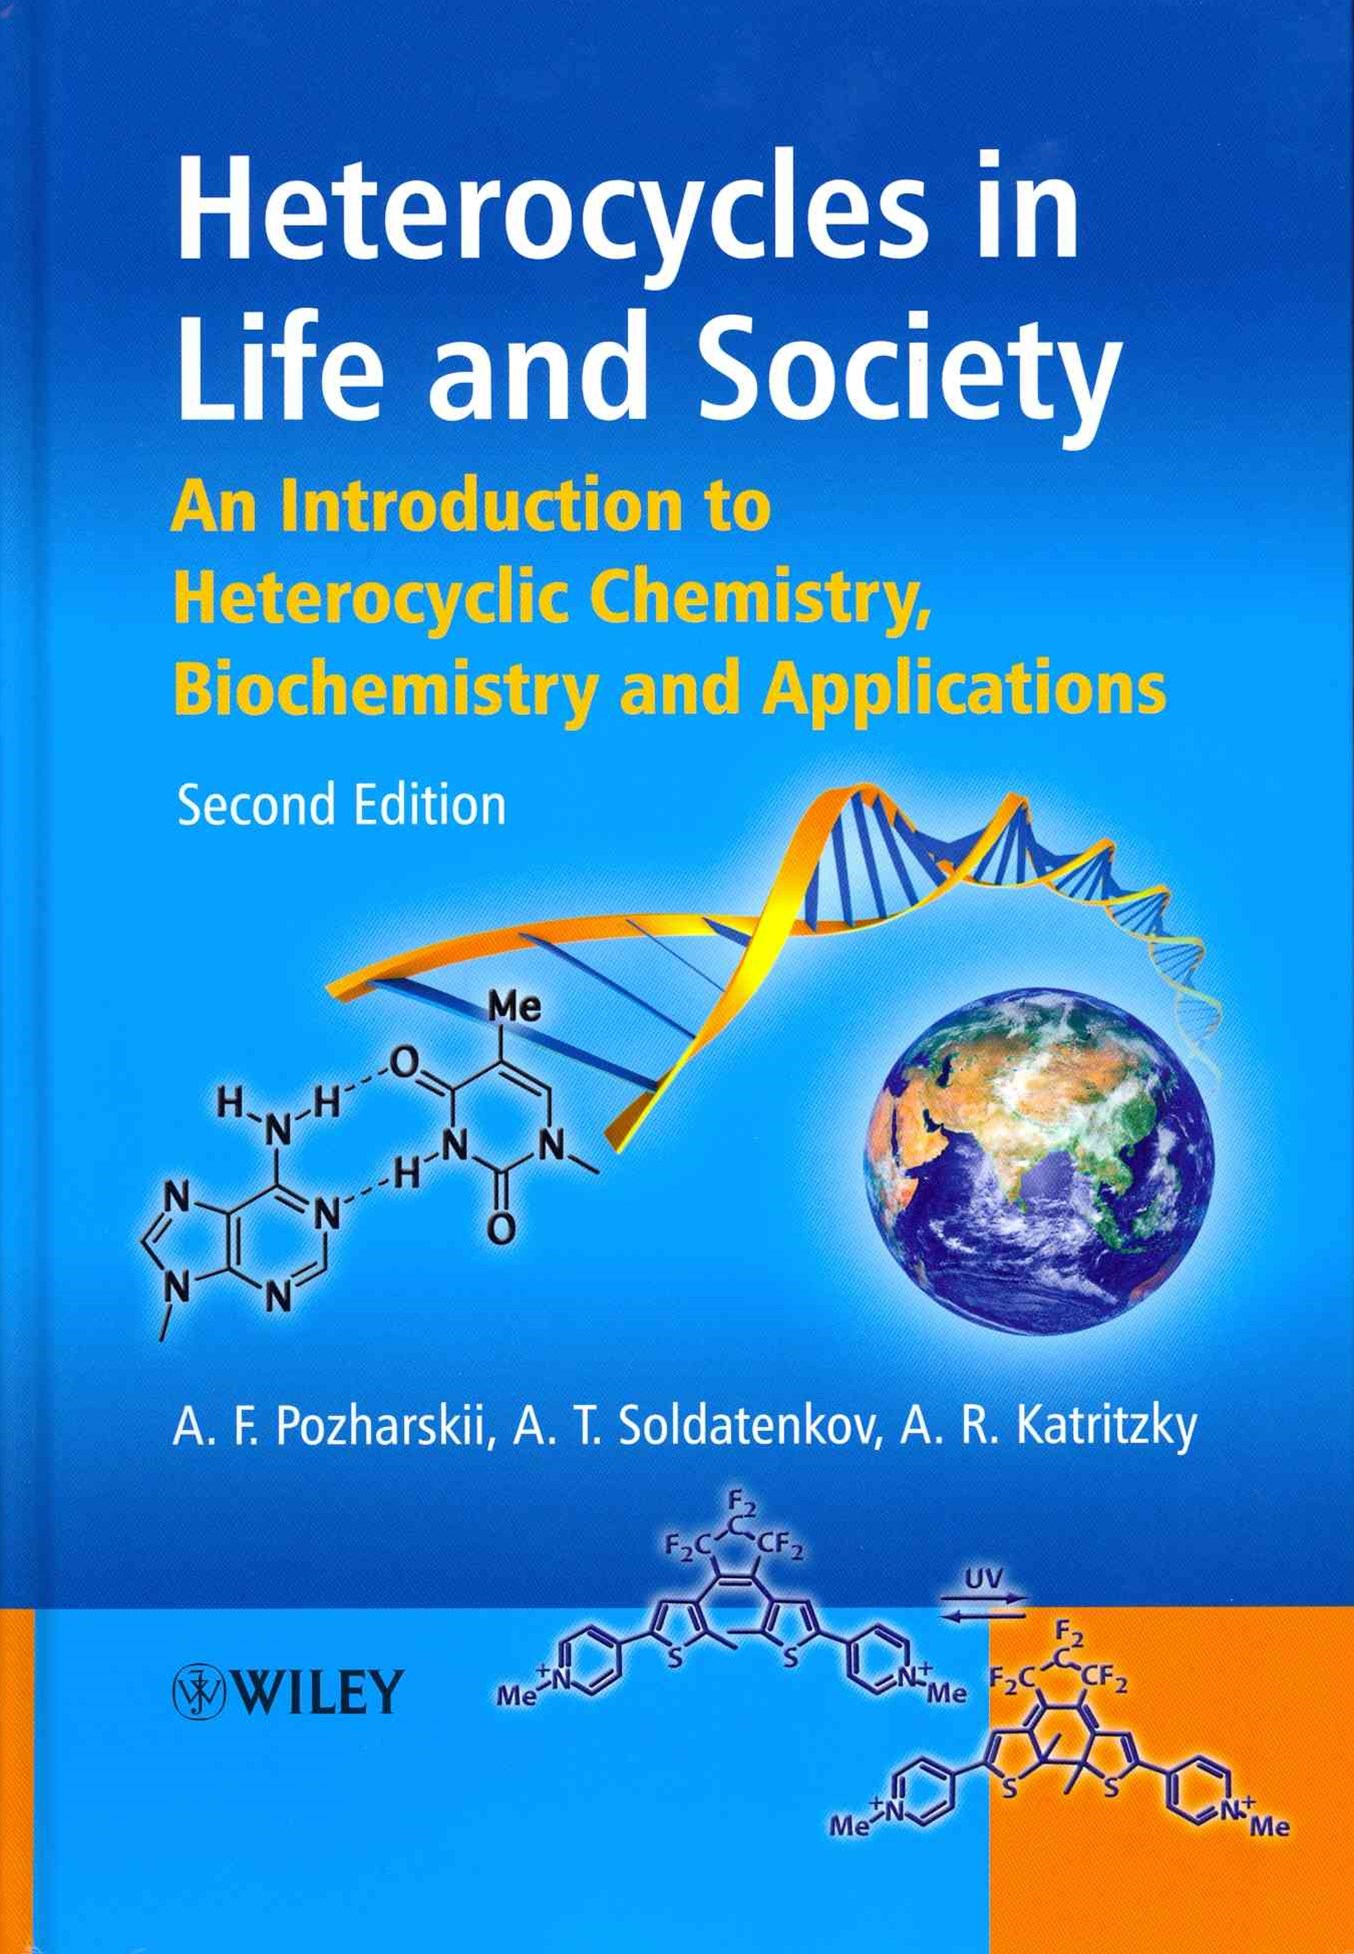 Heterocycles in Life and Society - an Introduction to Heterocyclic Chemistry, Biochemistry and      Applications 2E